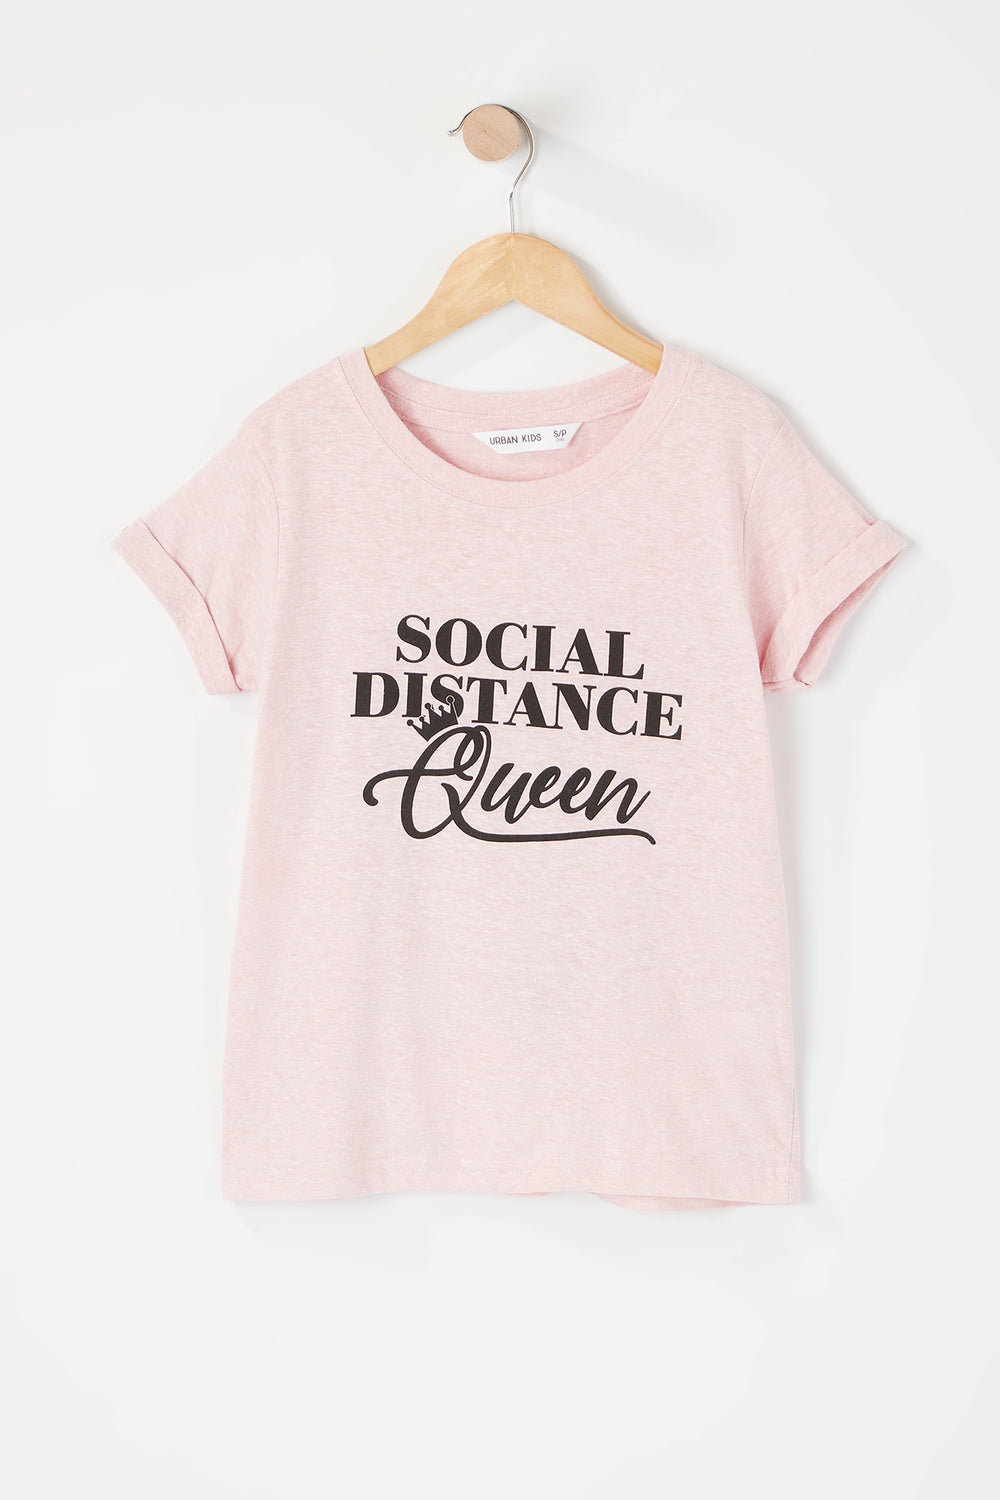 Girls Social Distance Queen Graphic T-Shirt Pink